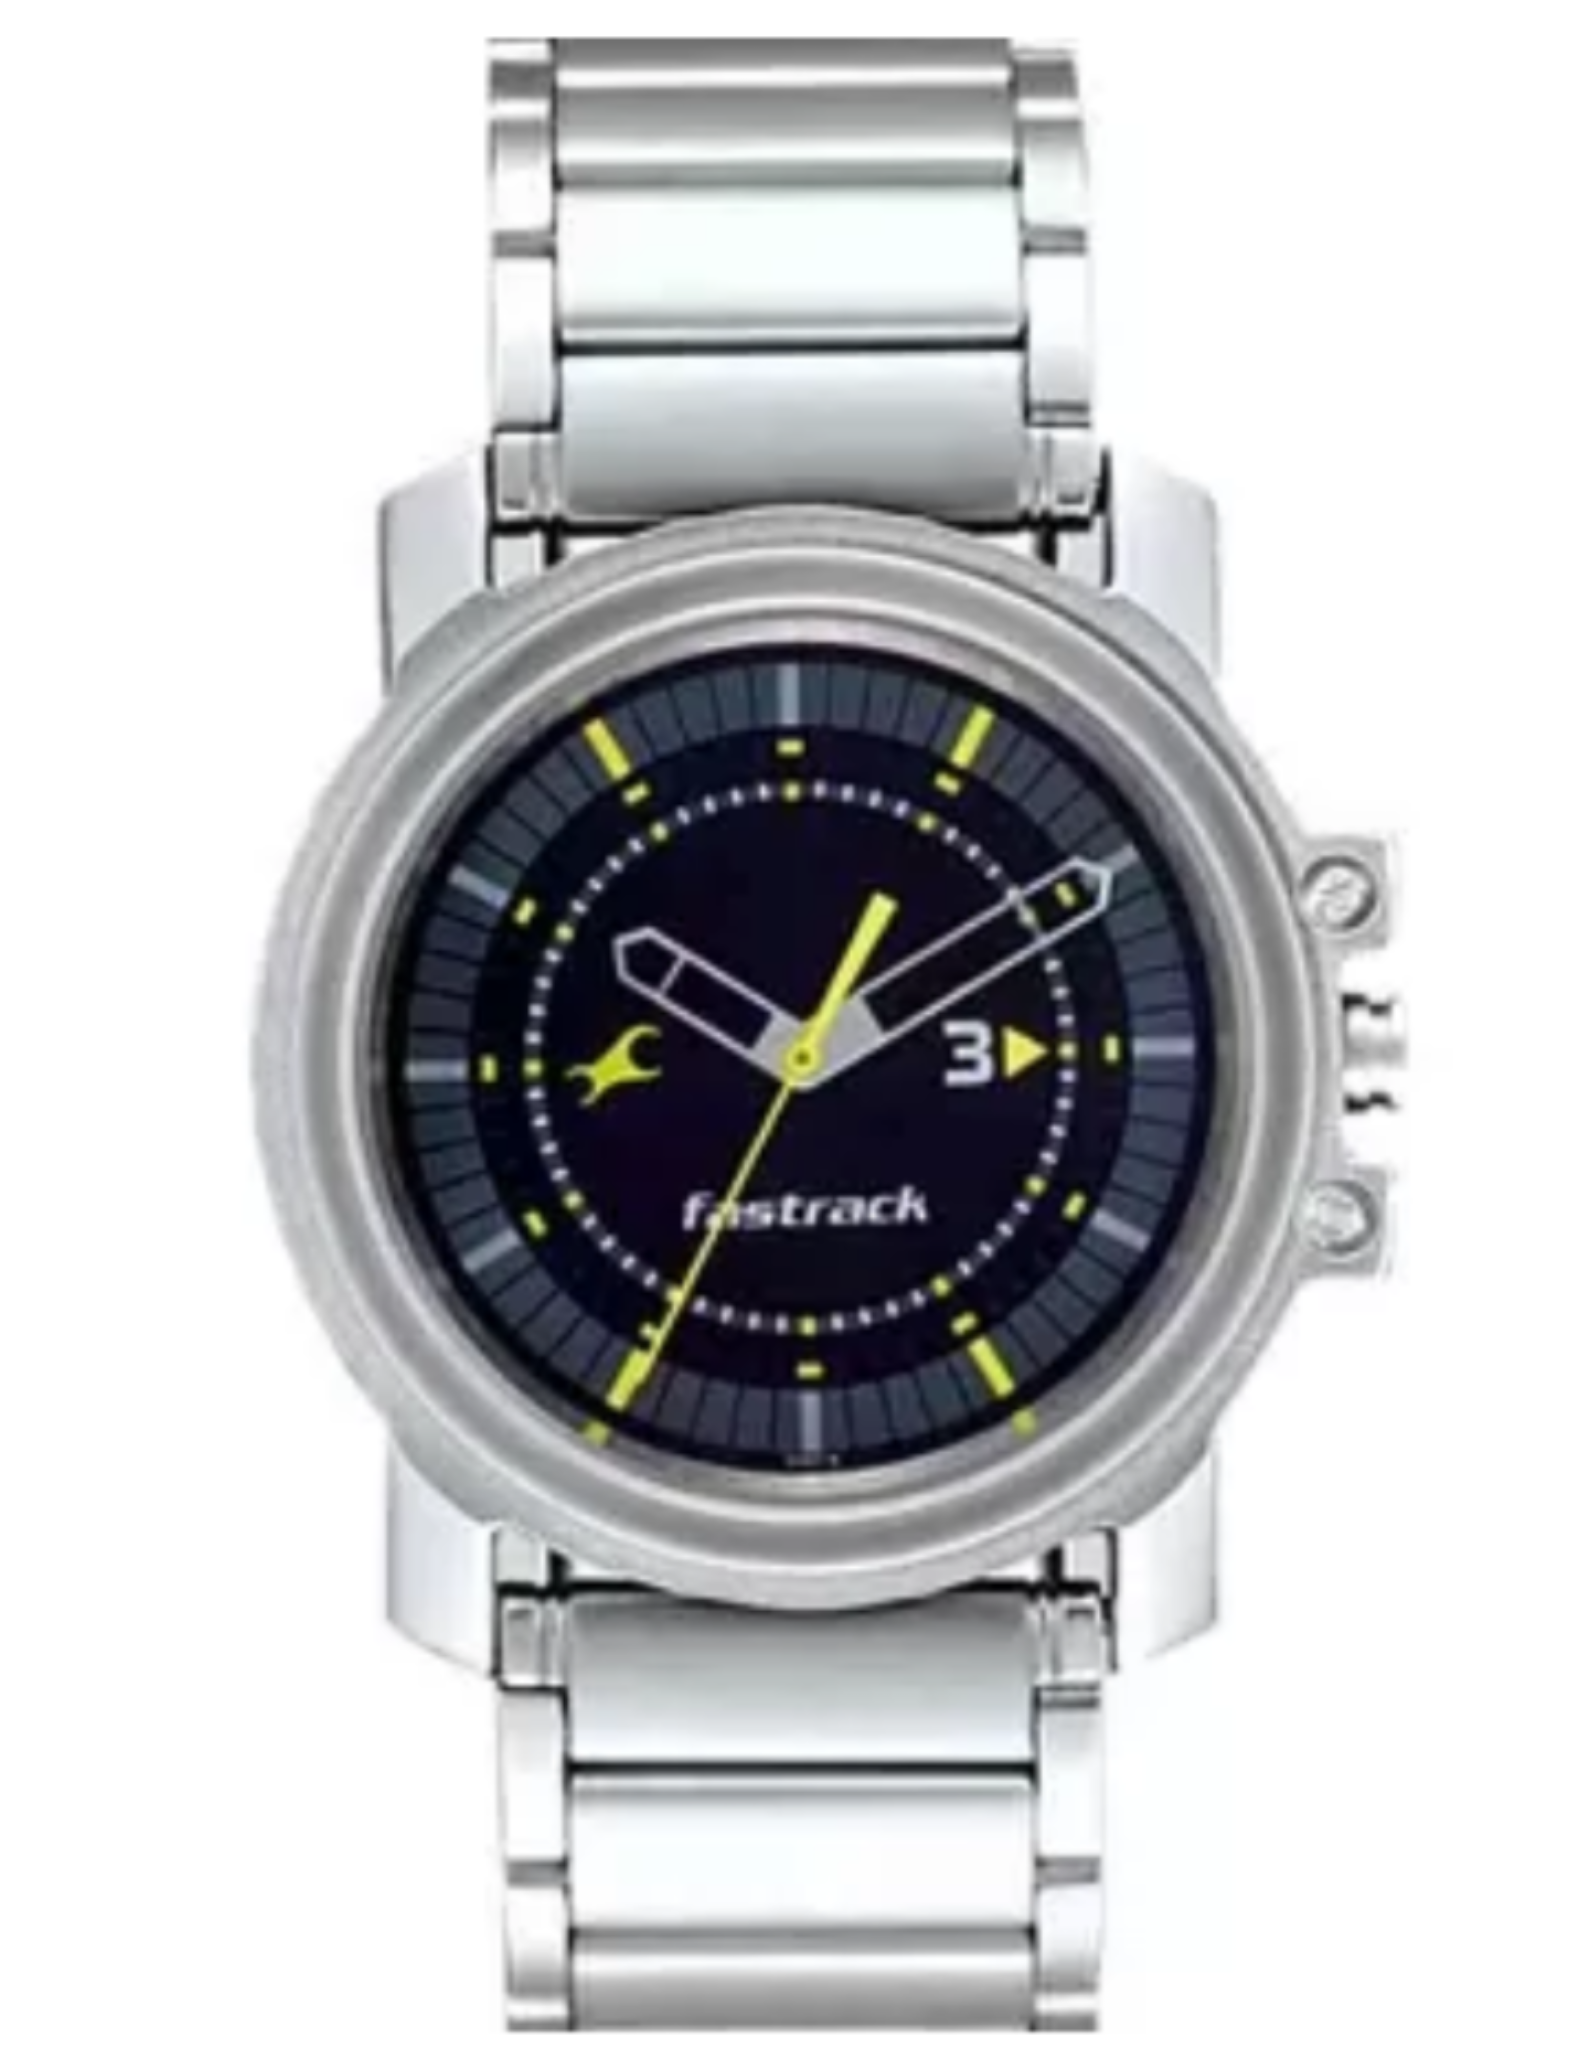 Snapdeal - Get minimum 50% off on Fastrack Watches